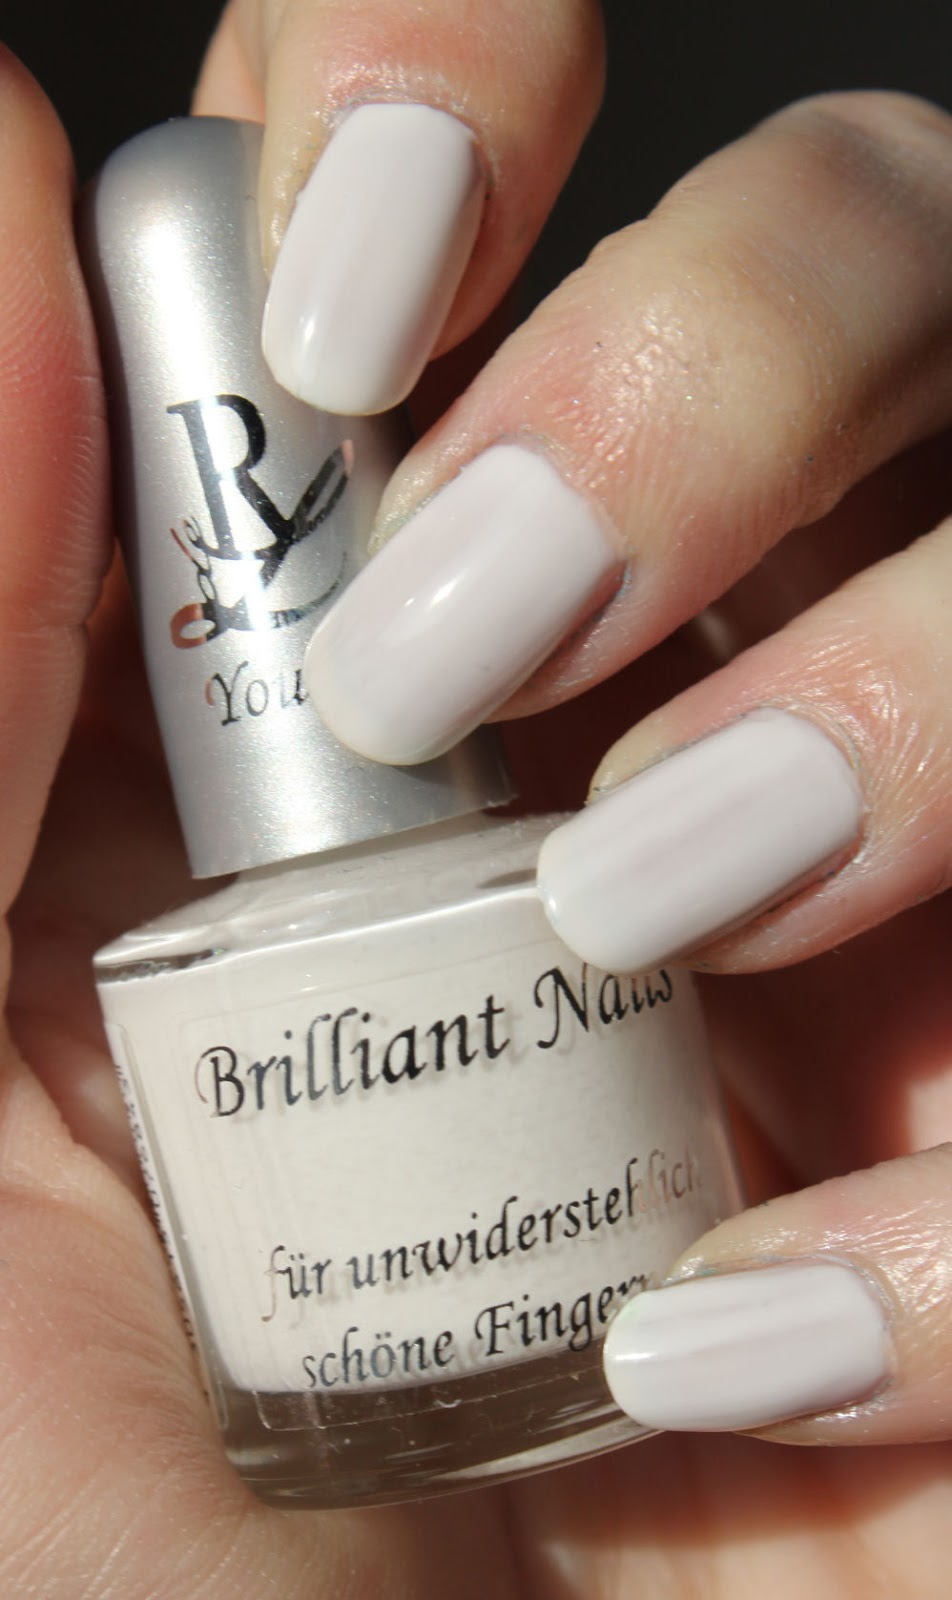 http://lacquediction.blogspot.de/2014/02/rival-de-loop-young-brilliant-nails-05.html